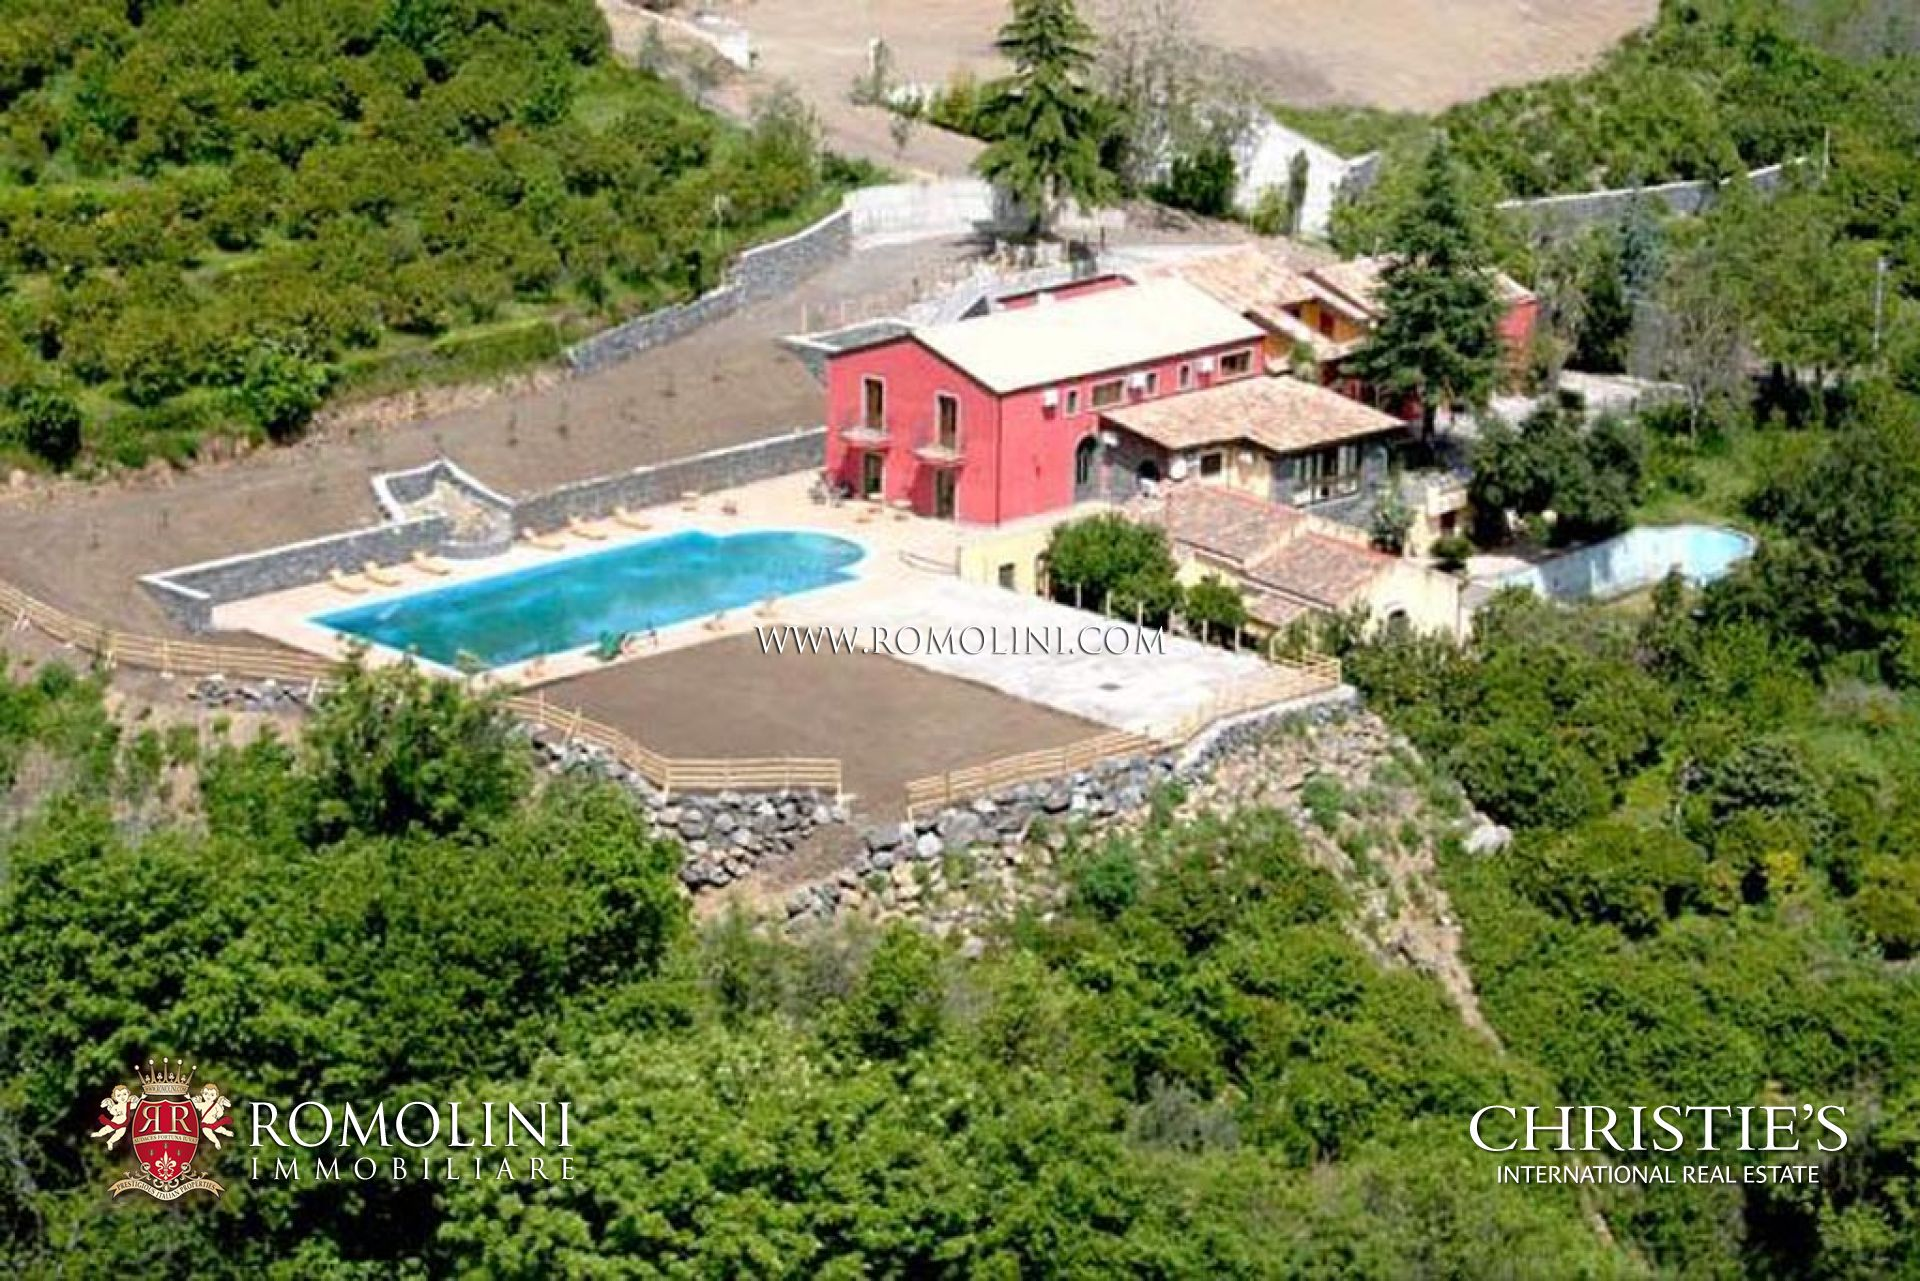 Farm With Agriturismo For Sale In Sicily Mount Etna Regional Park